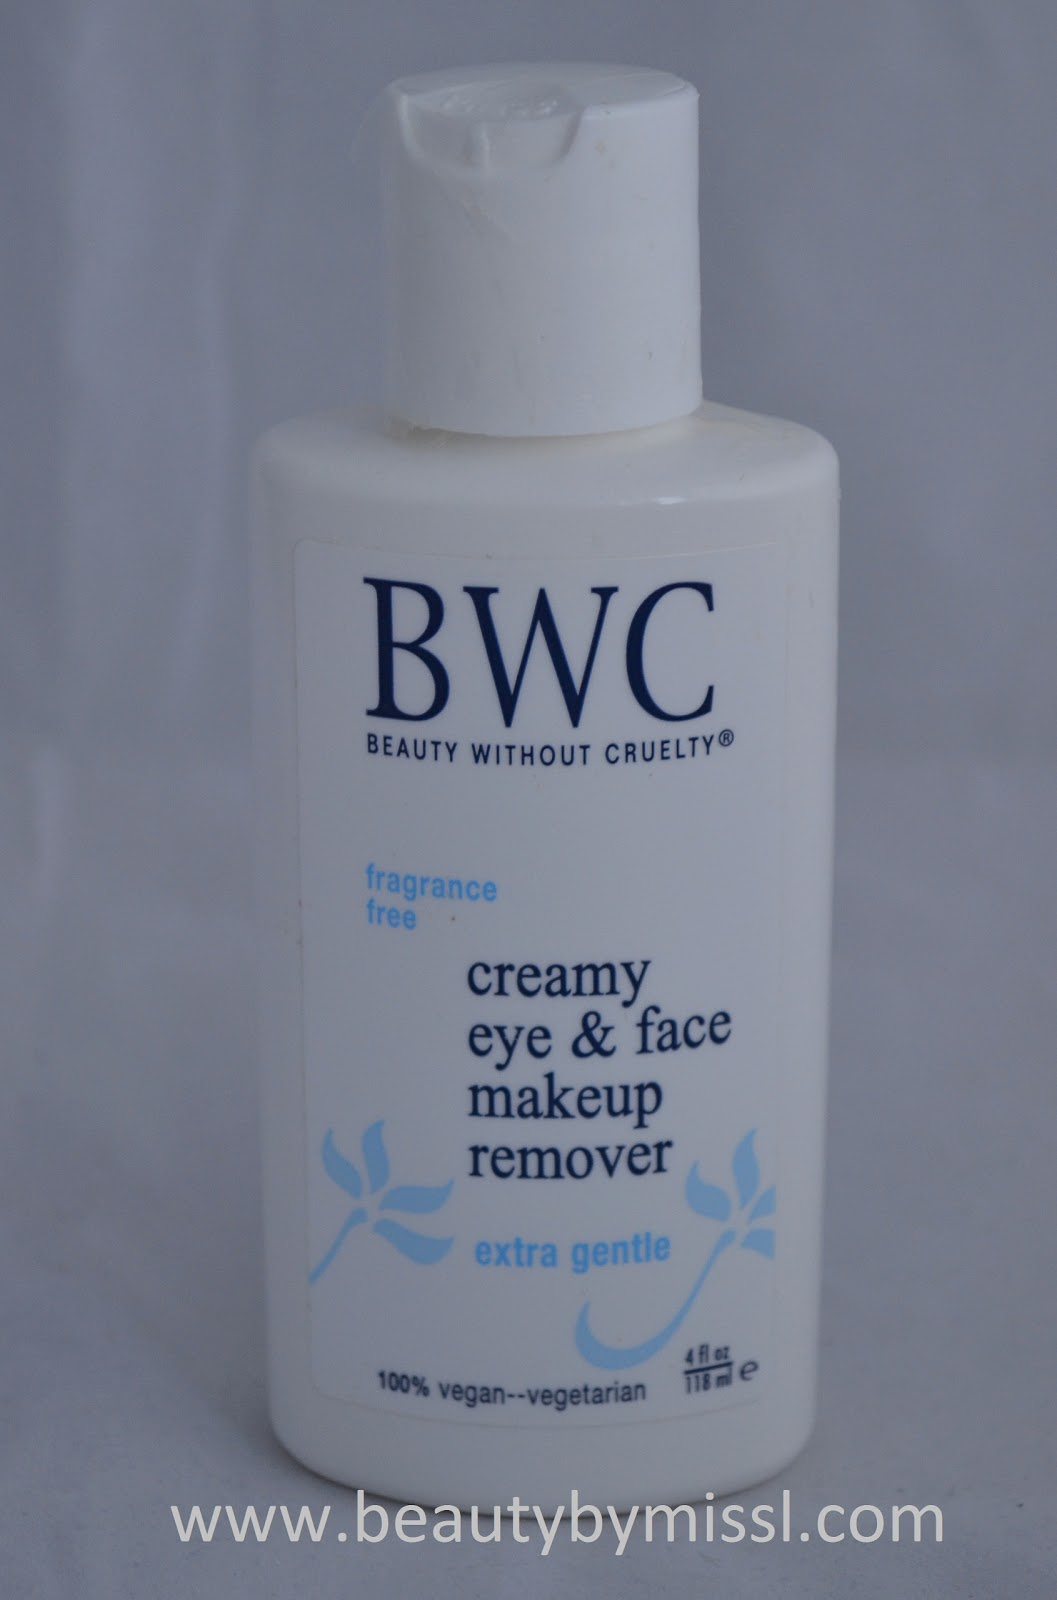 Beauty Without Cruelty Creamy Eye & Face Makeup Remover review